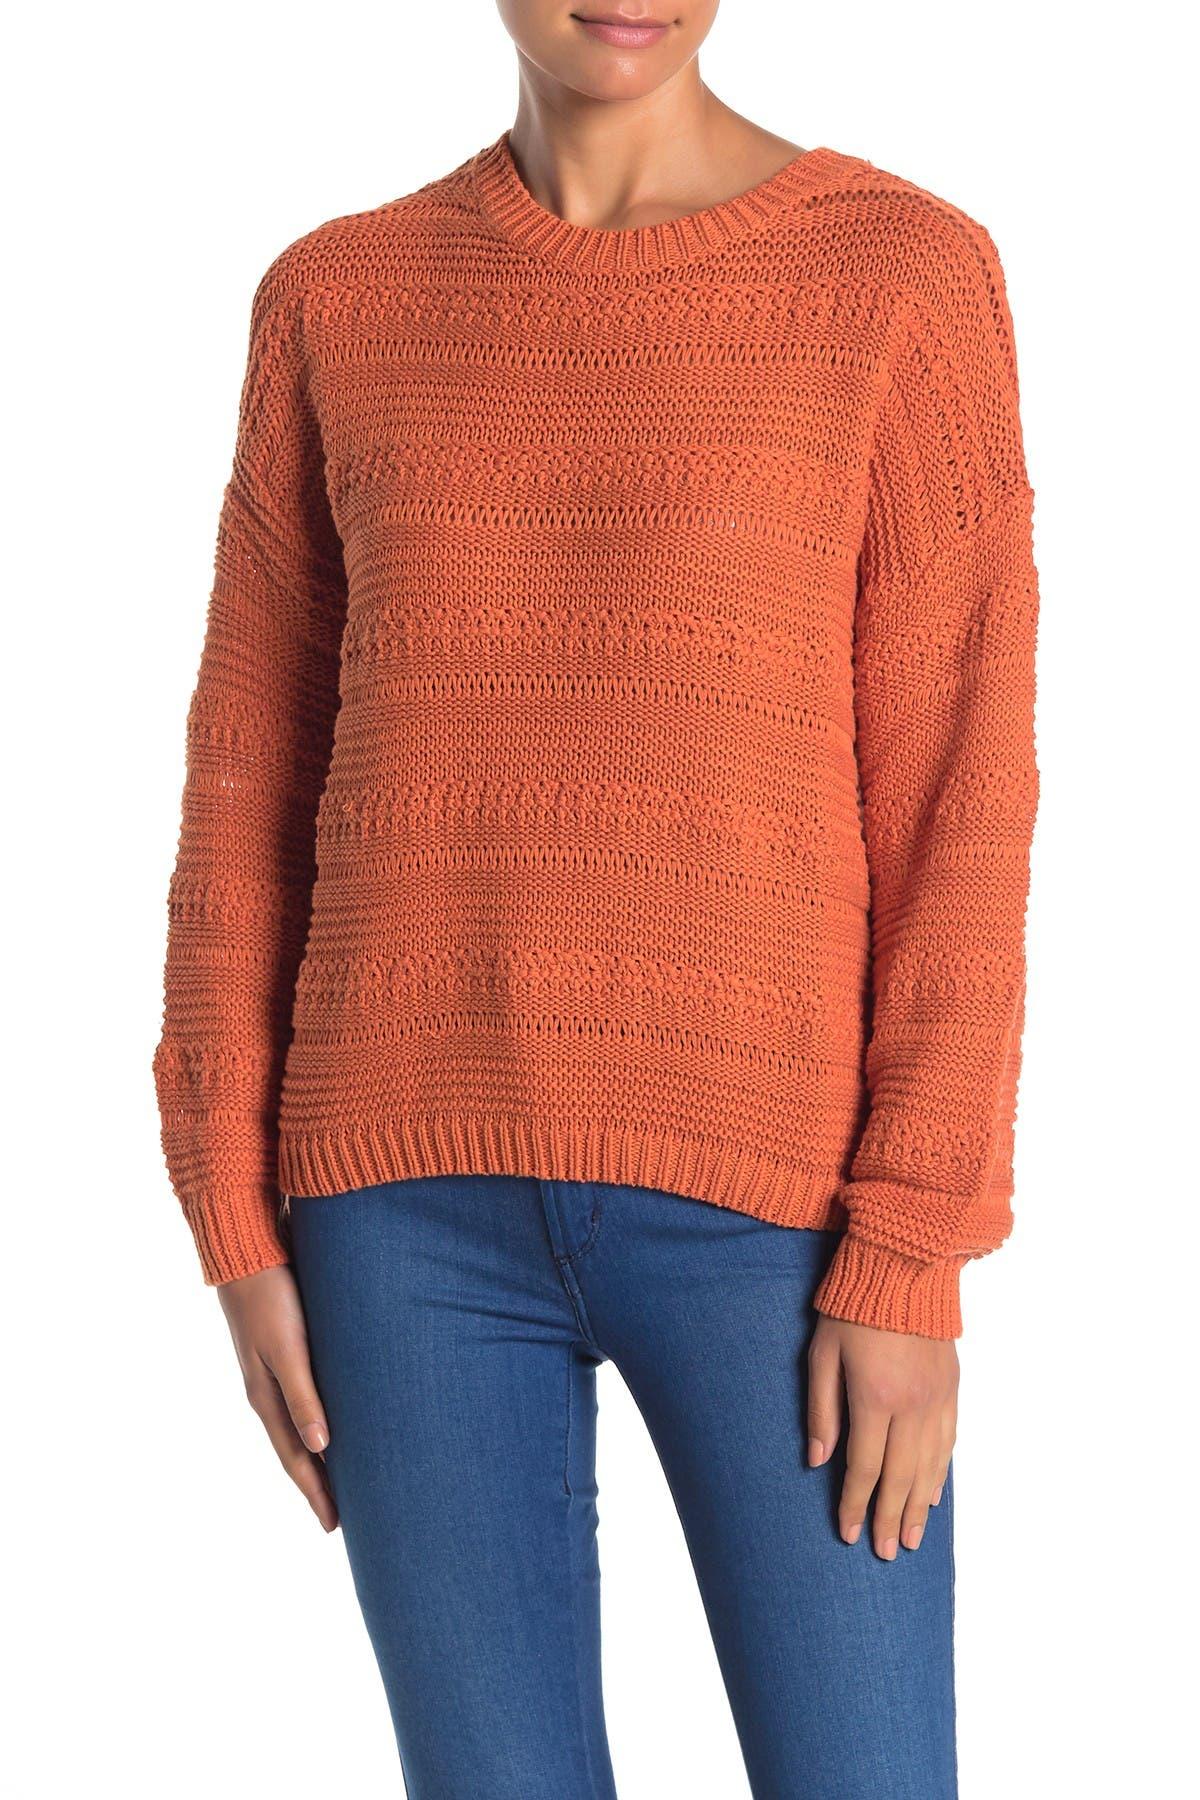 Image of Lush Crew Neck Pullover Sweater